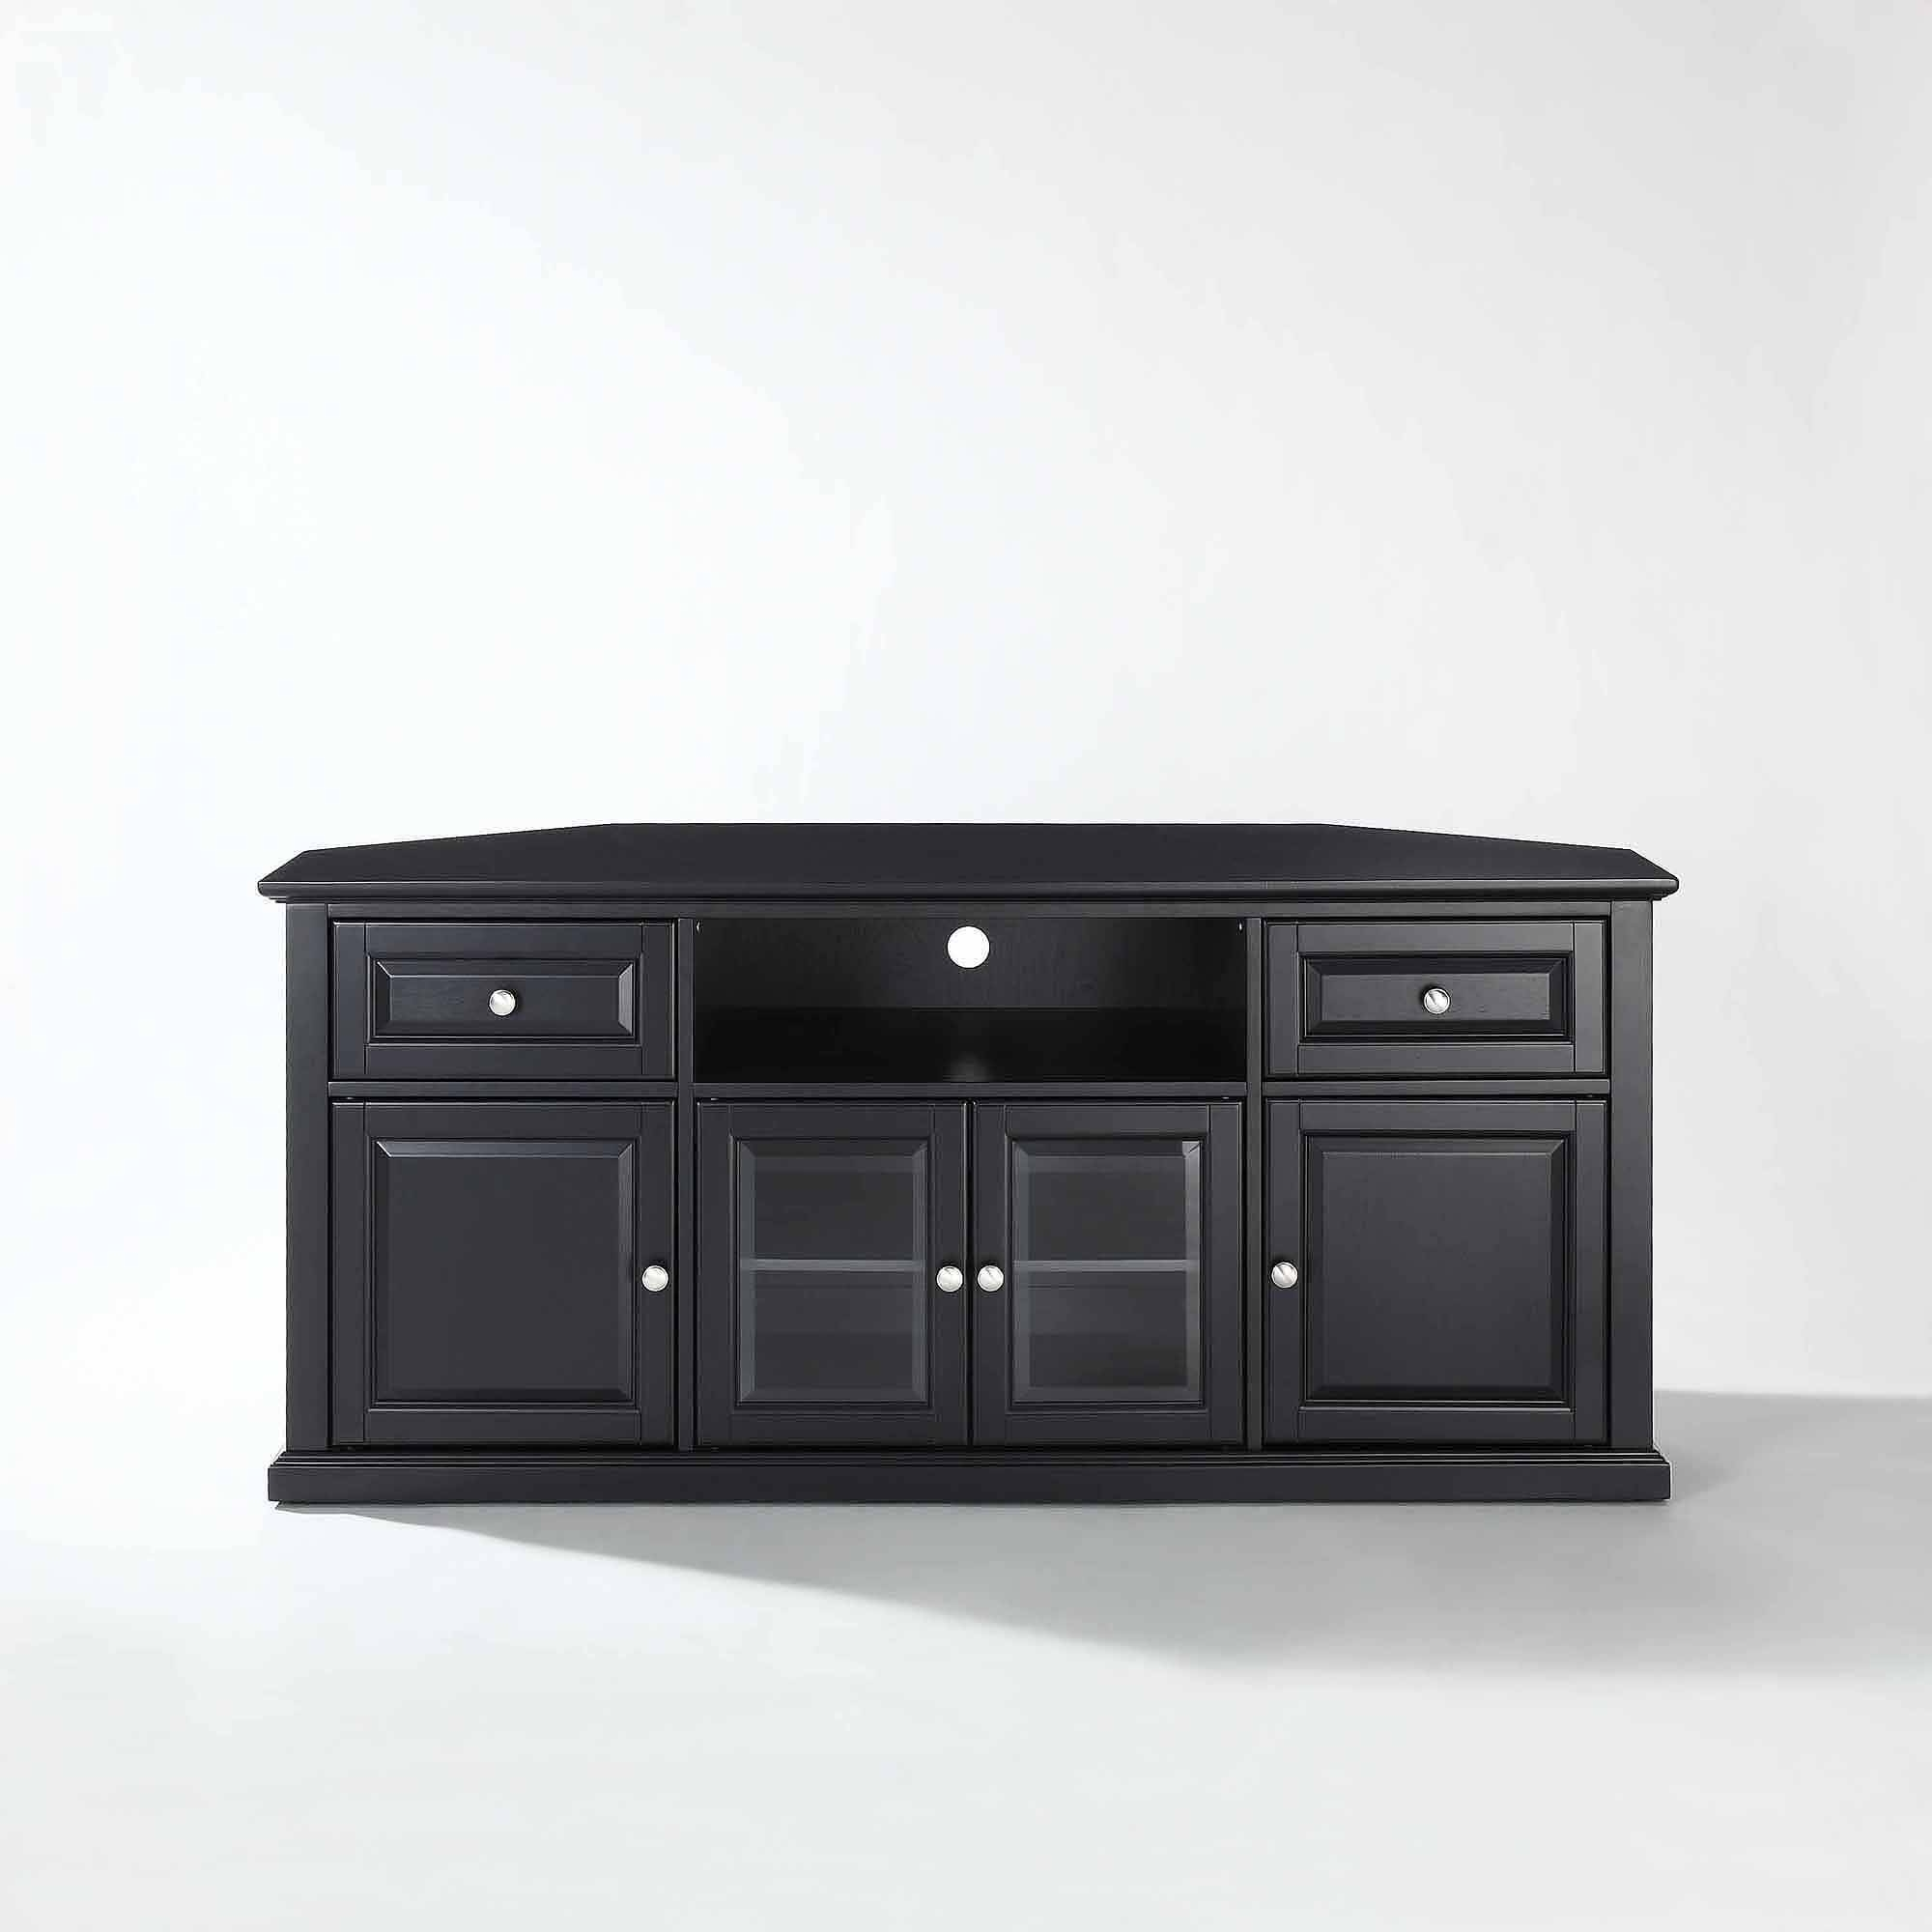 Corner Tv Stands For 60 Flat Screens - Aiyorikane with regard to Corner Tv Stands for 60 Inch Flat Screens (Image 8 of 15)